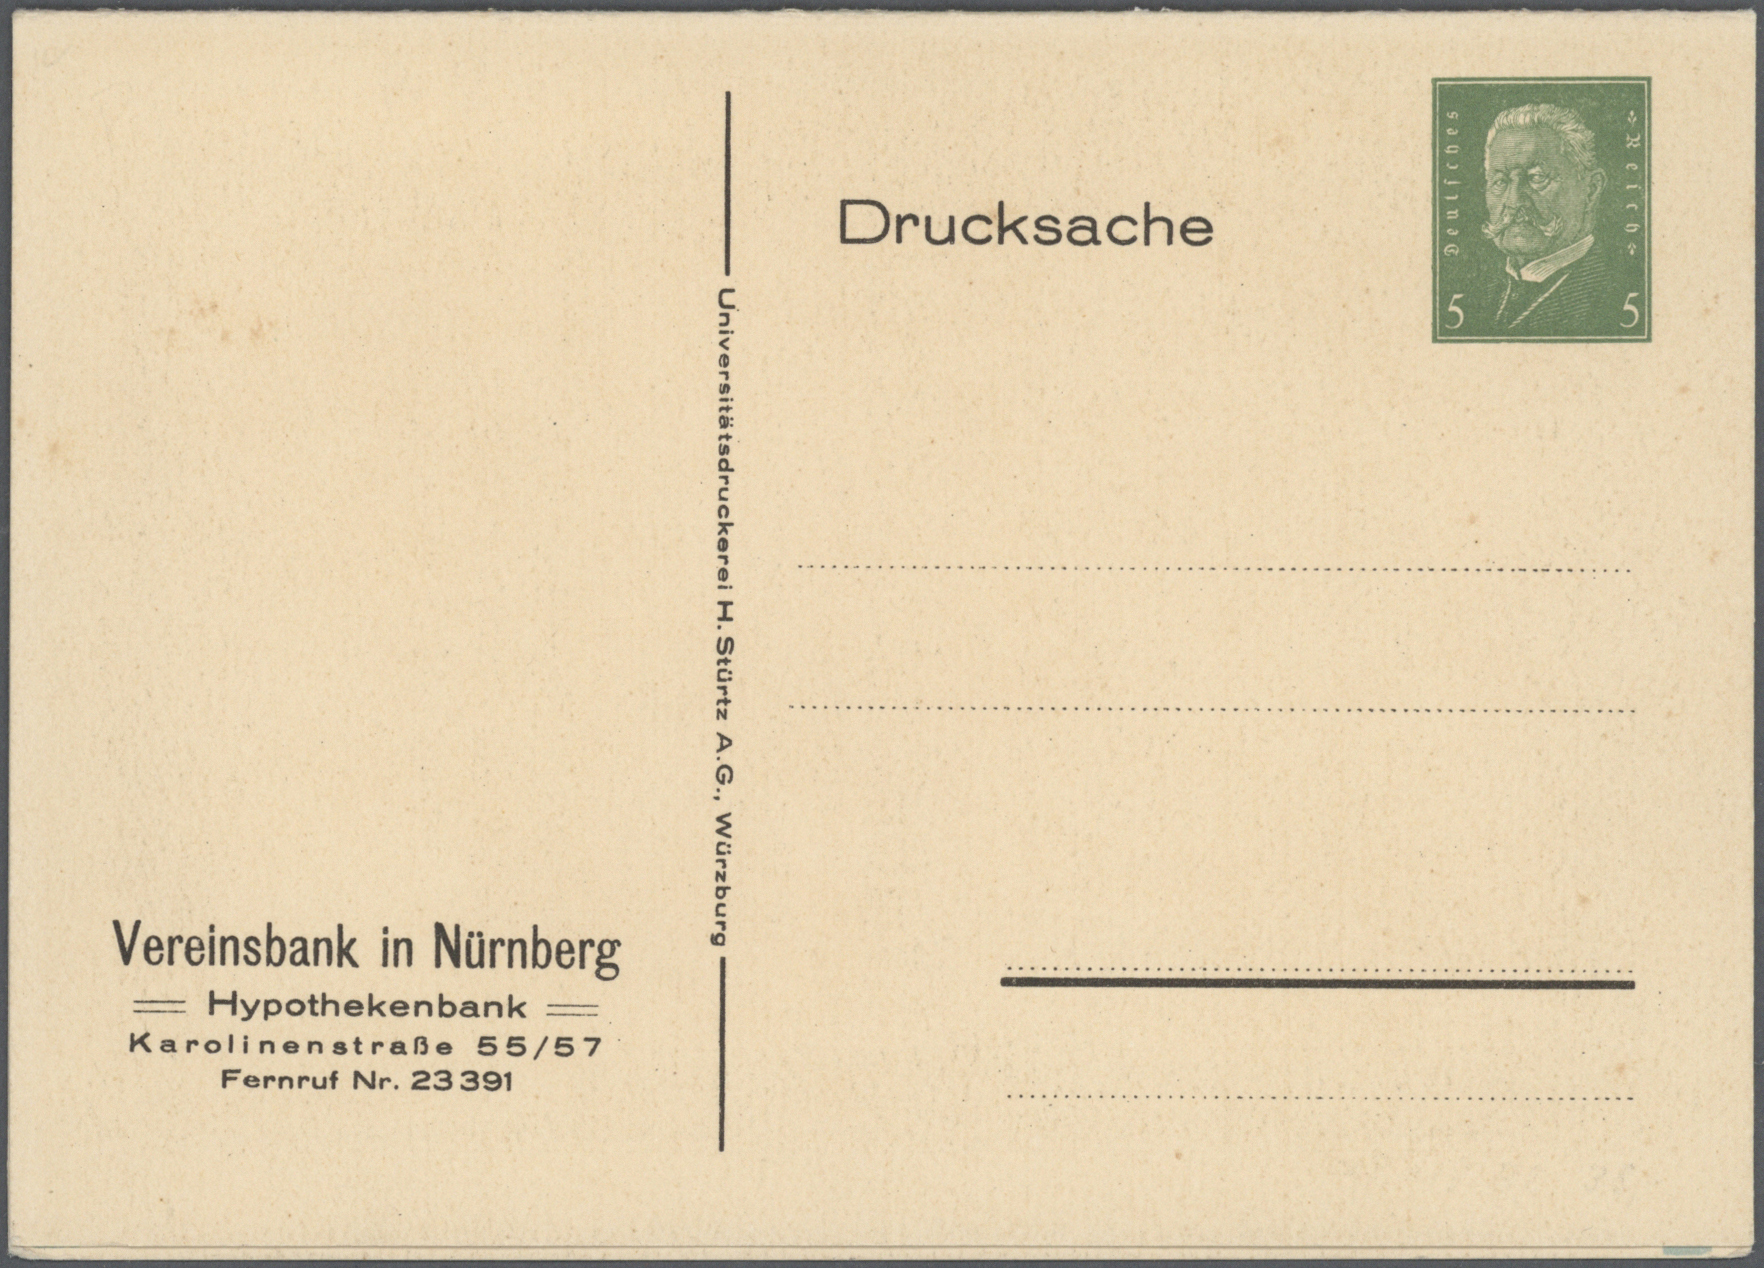 Lot 37118 - Deutsches Reich - Ganzsachen  -  Auktionshaus Christoph Gärtner GmbH & Co. KG Collections Germany,  Collections Supplement, Surprise boxes #39 Day 7